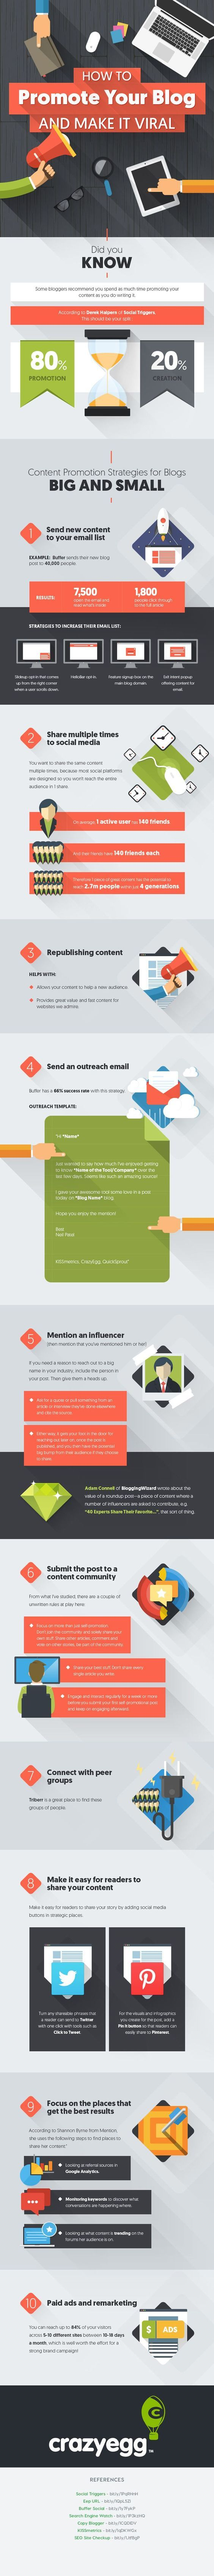 10 Powerful Ways To Promote Your Blog Posts & Get Blog Traffic - infographic